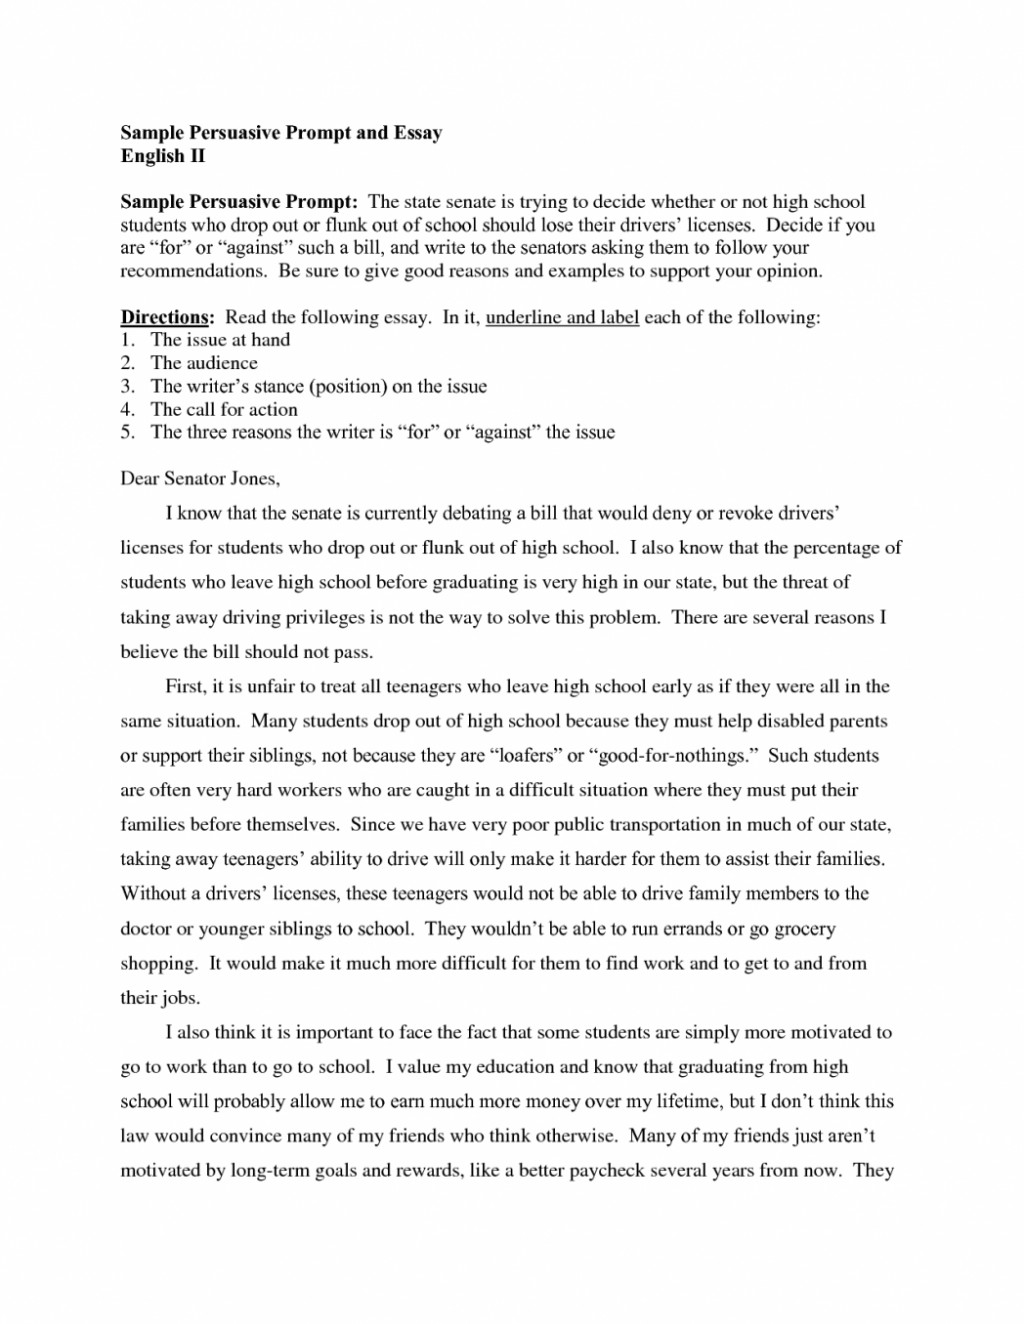 007 Essay Example How To Write Outstanding A Persuasive Outline Conclusion Large